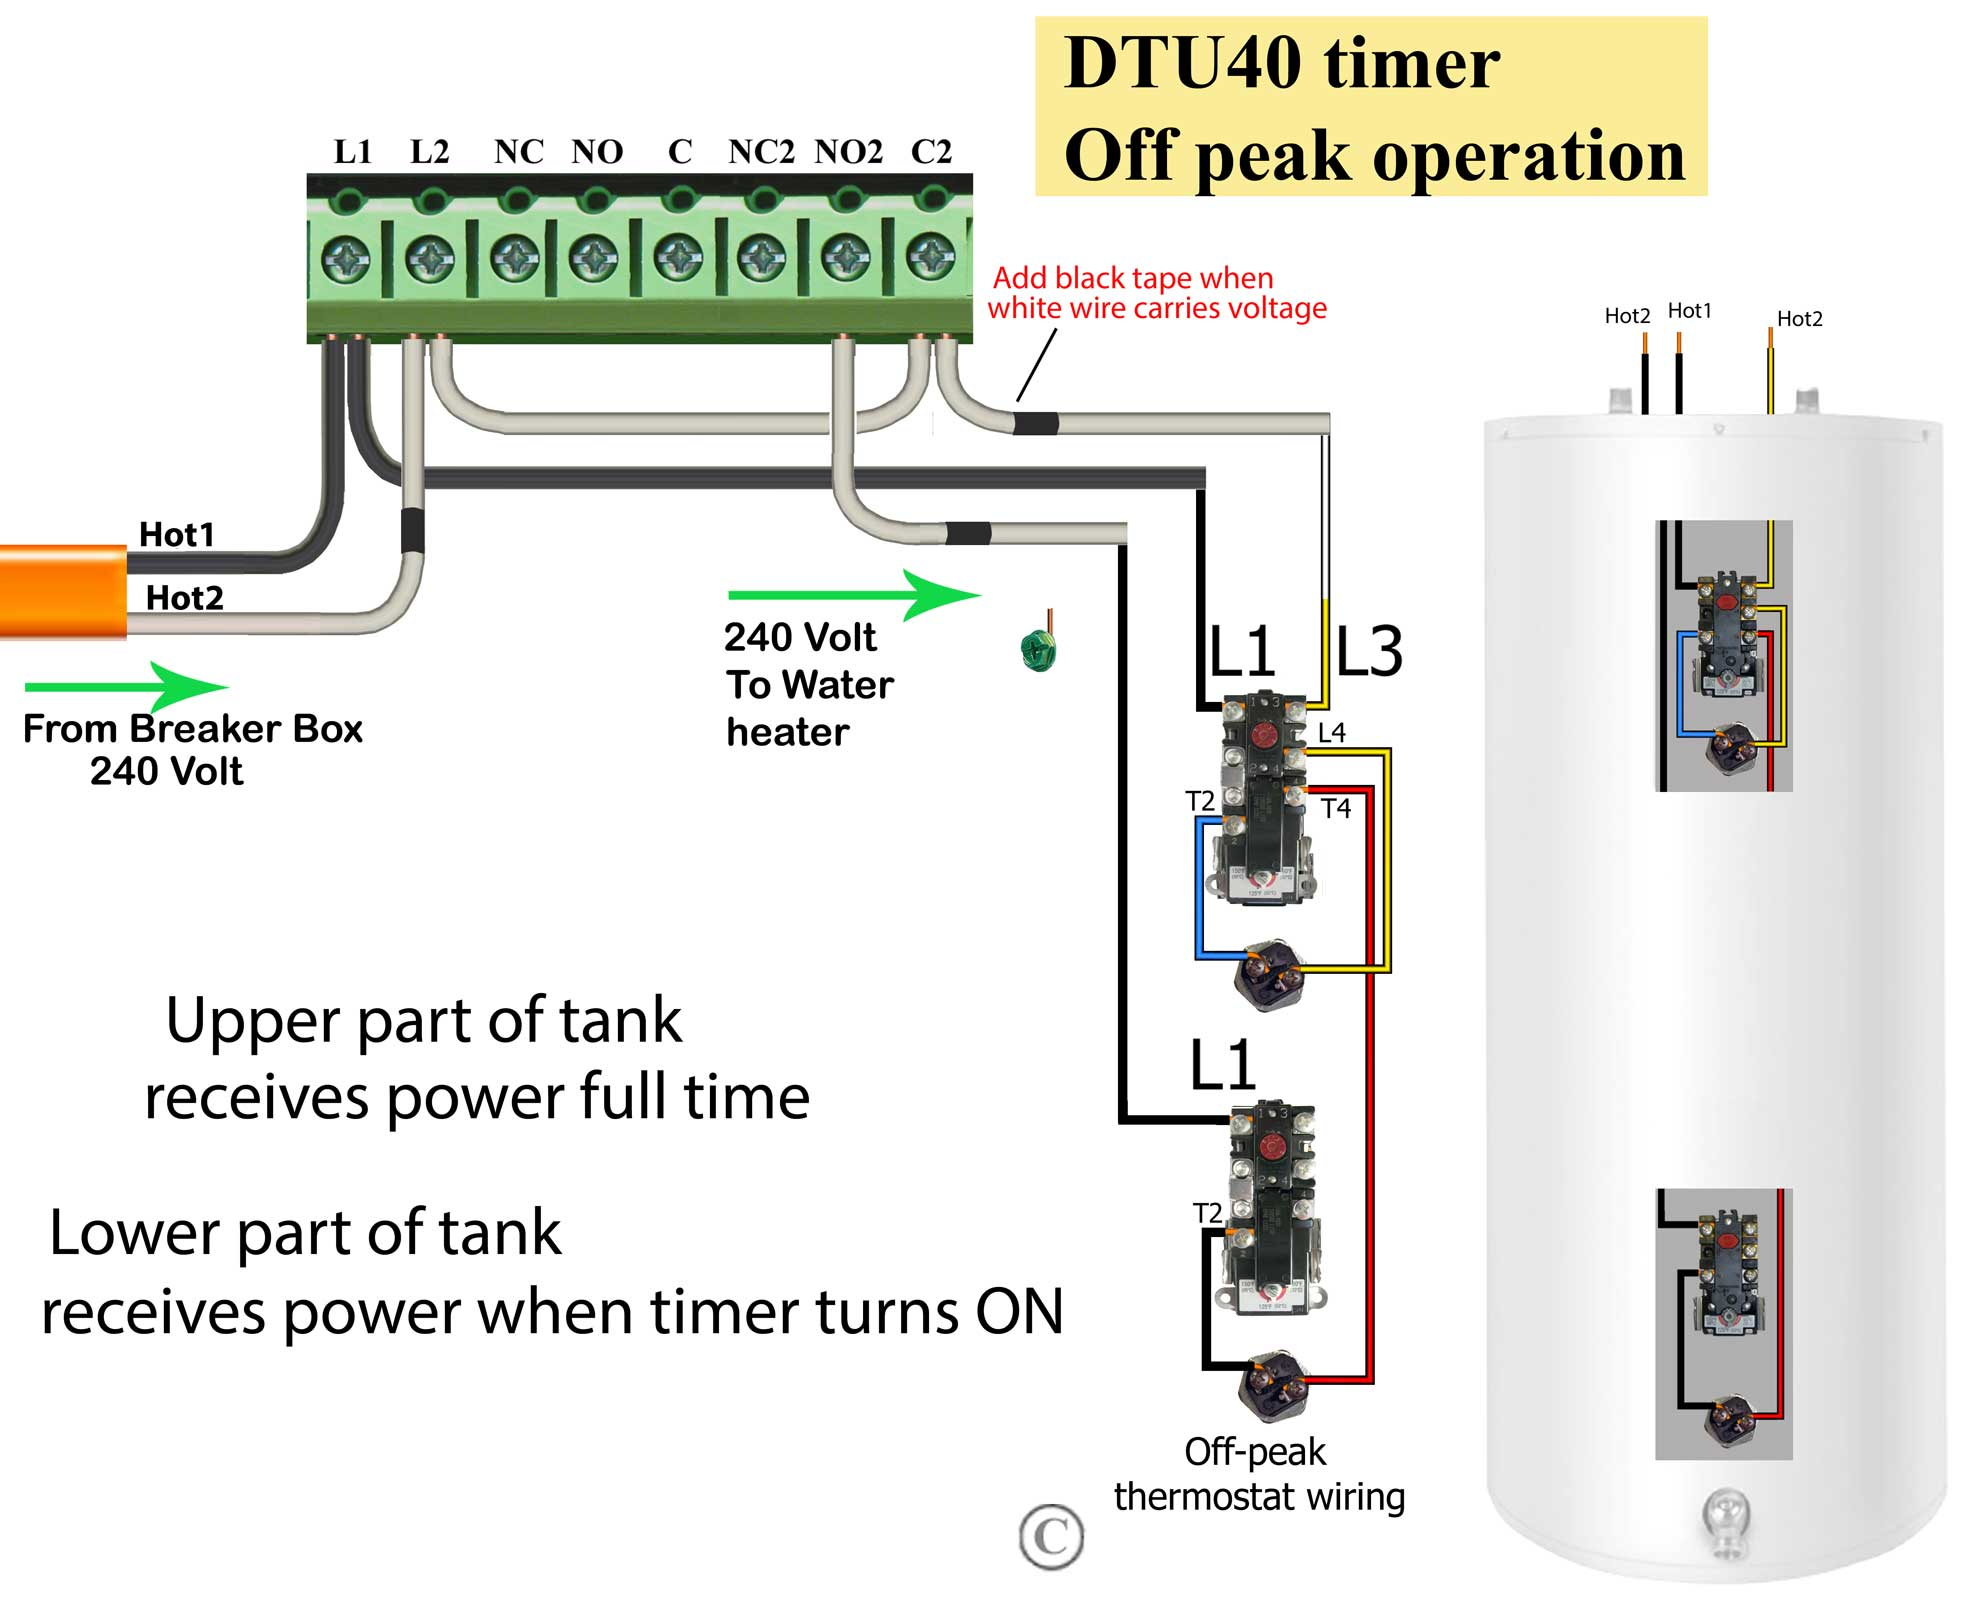 Tork DTU 240V circuit off peak how to wire water heater thermostat hot water heater wiring schematic at gsmx.co